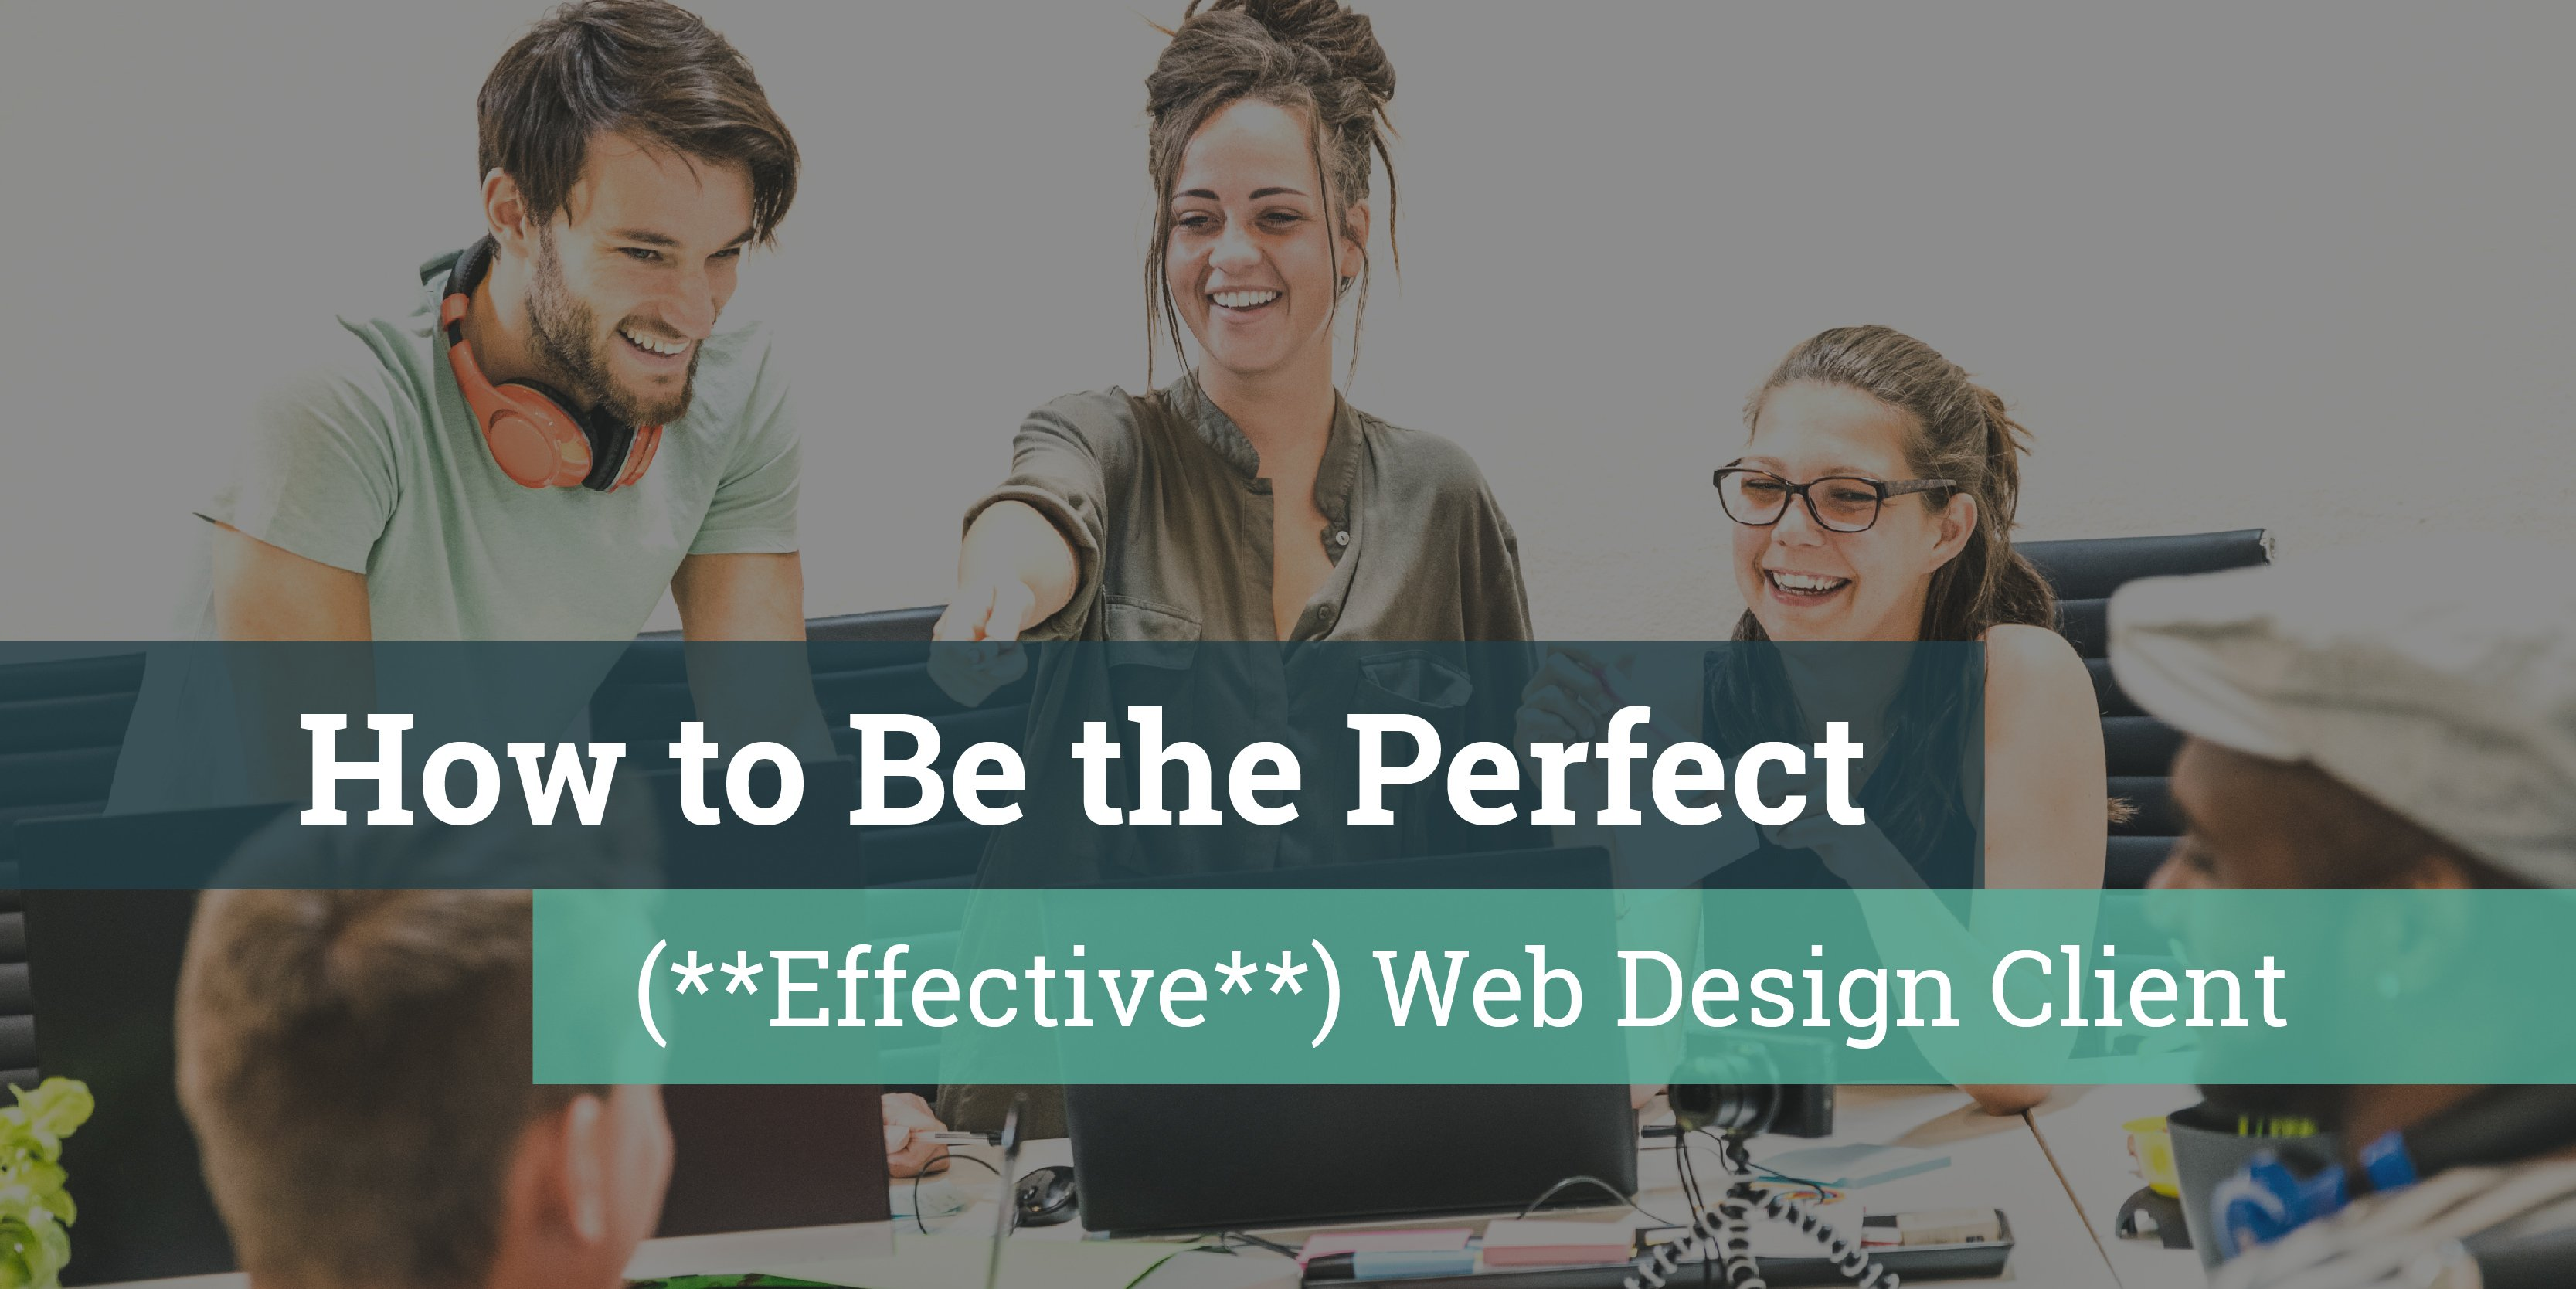 How to Be the Perfect Web Design Client